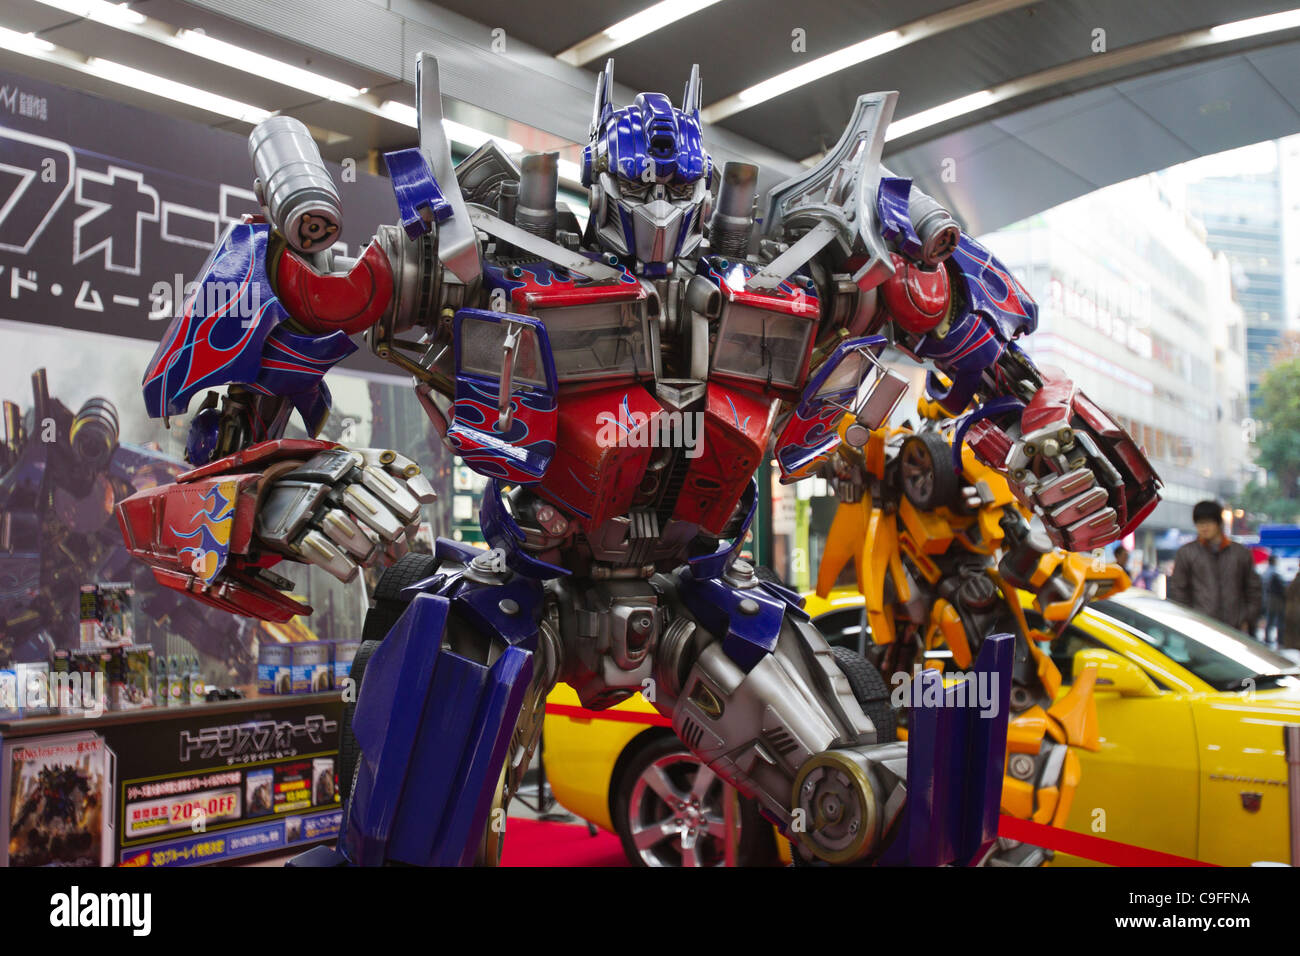 dec 15, 2011, tokyo, japan - a large scale figure of optimus prime